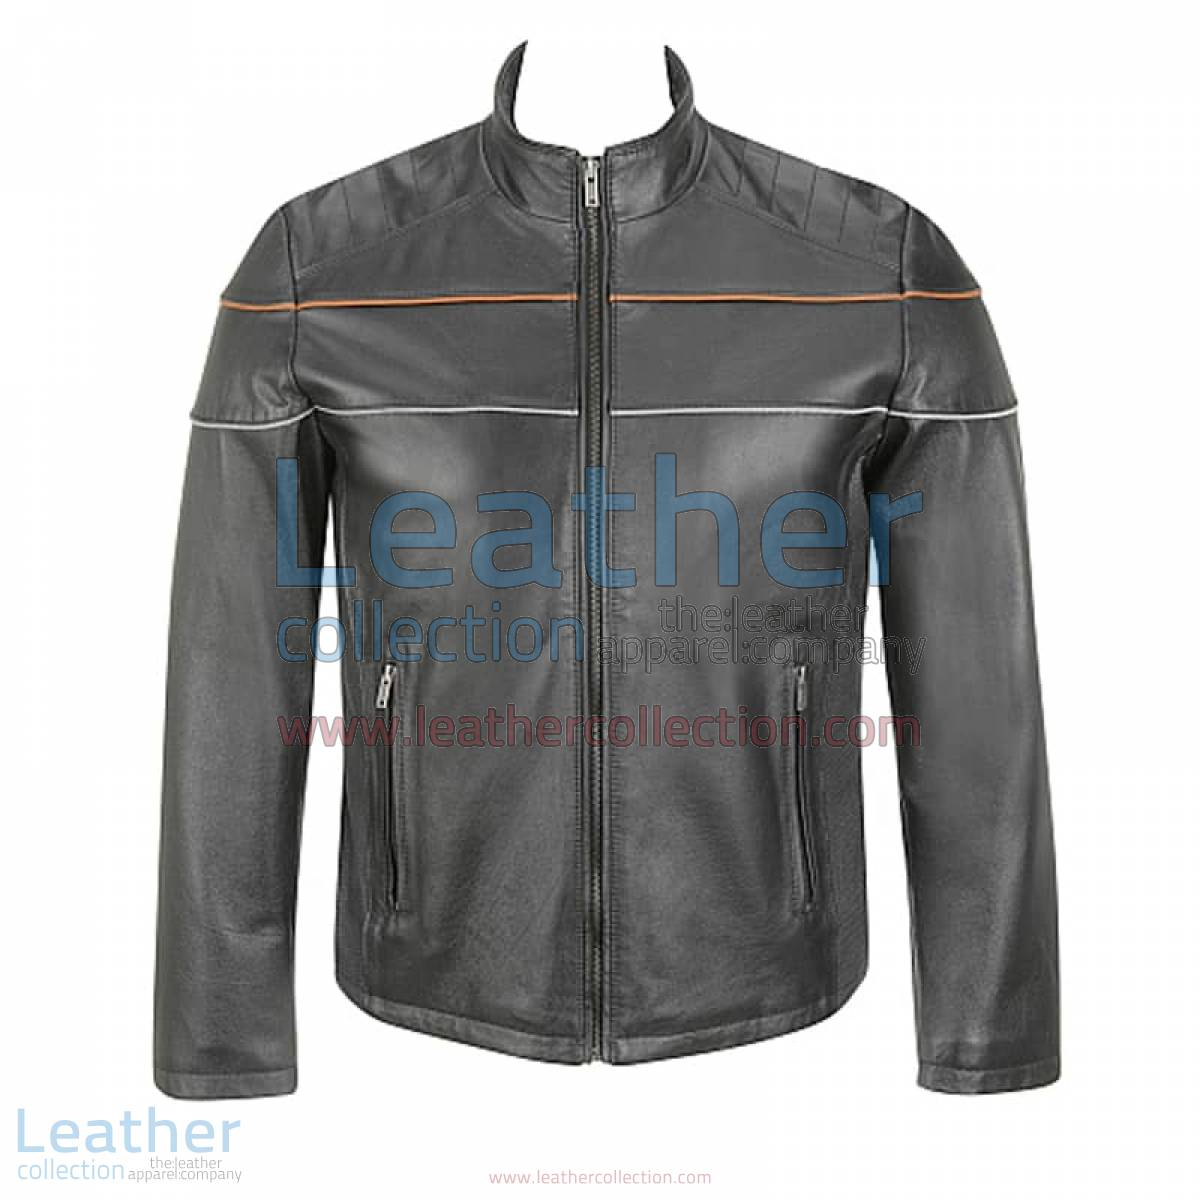 Leather Moto Jacket with Piping on Chest | piping jacket,leather moto jacket